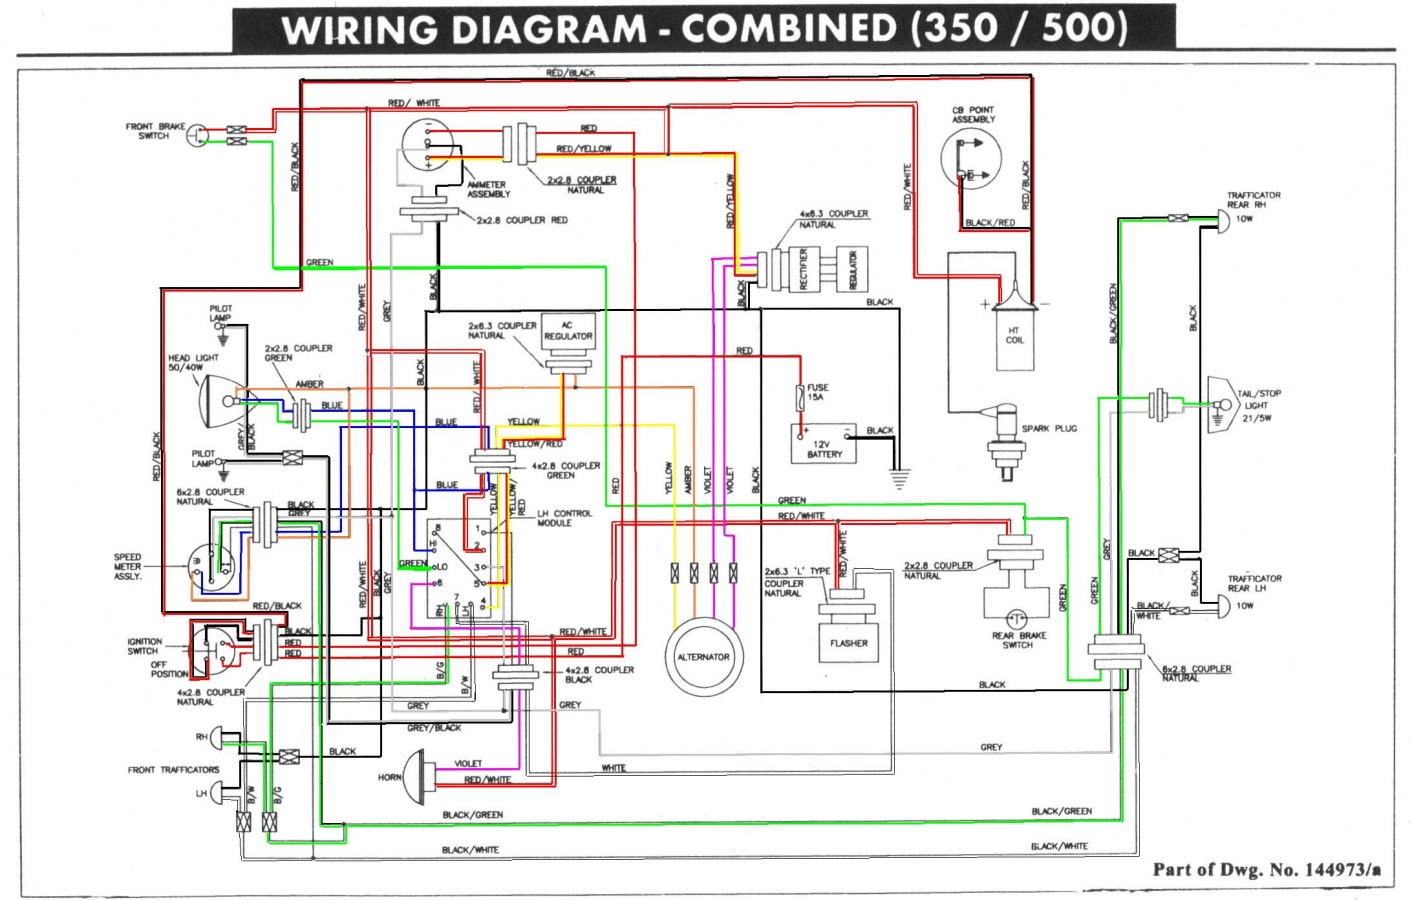 diagrams 875667 royal wiring diagrams royal enfield wiring dragster wiring diagram at mr168.co